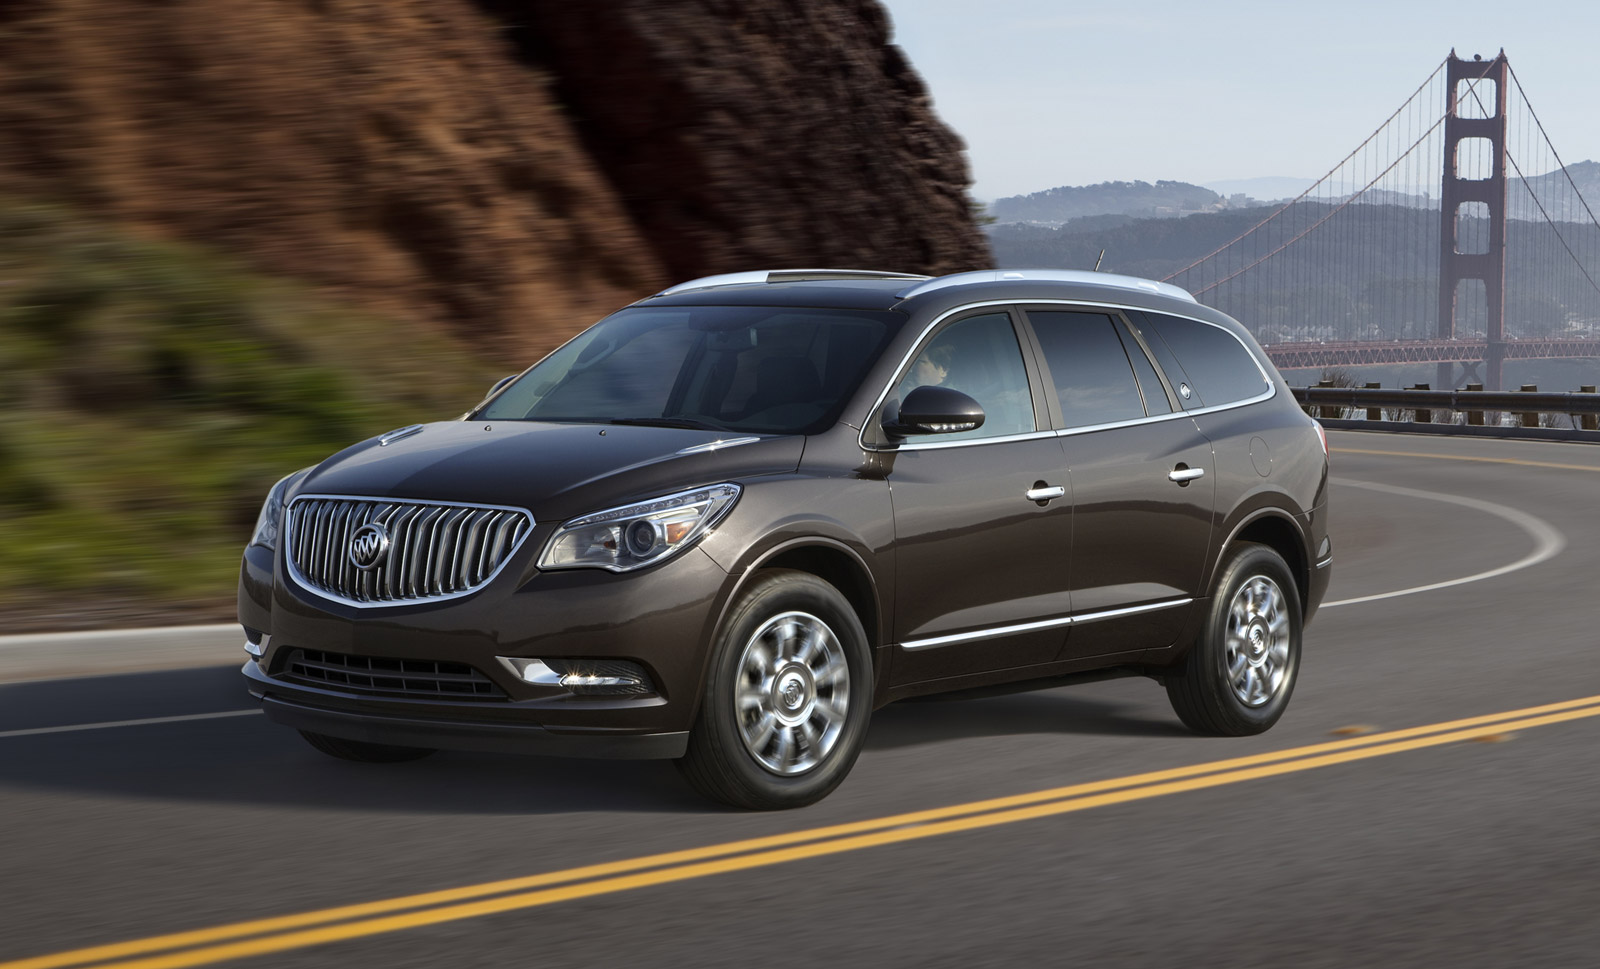 2013 buick enclave priced from 39 270. Black Bedroom Furniture Sets. Home Design Ideas